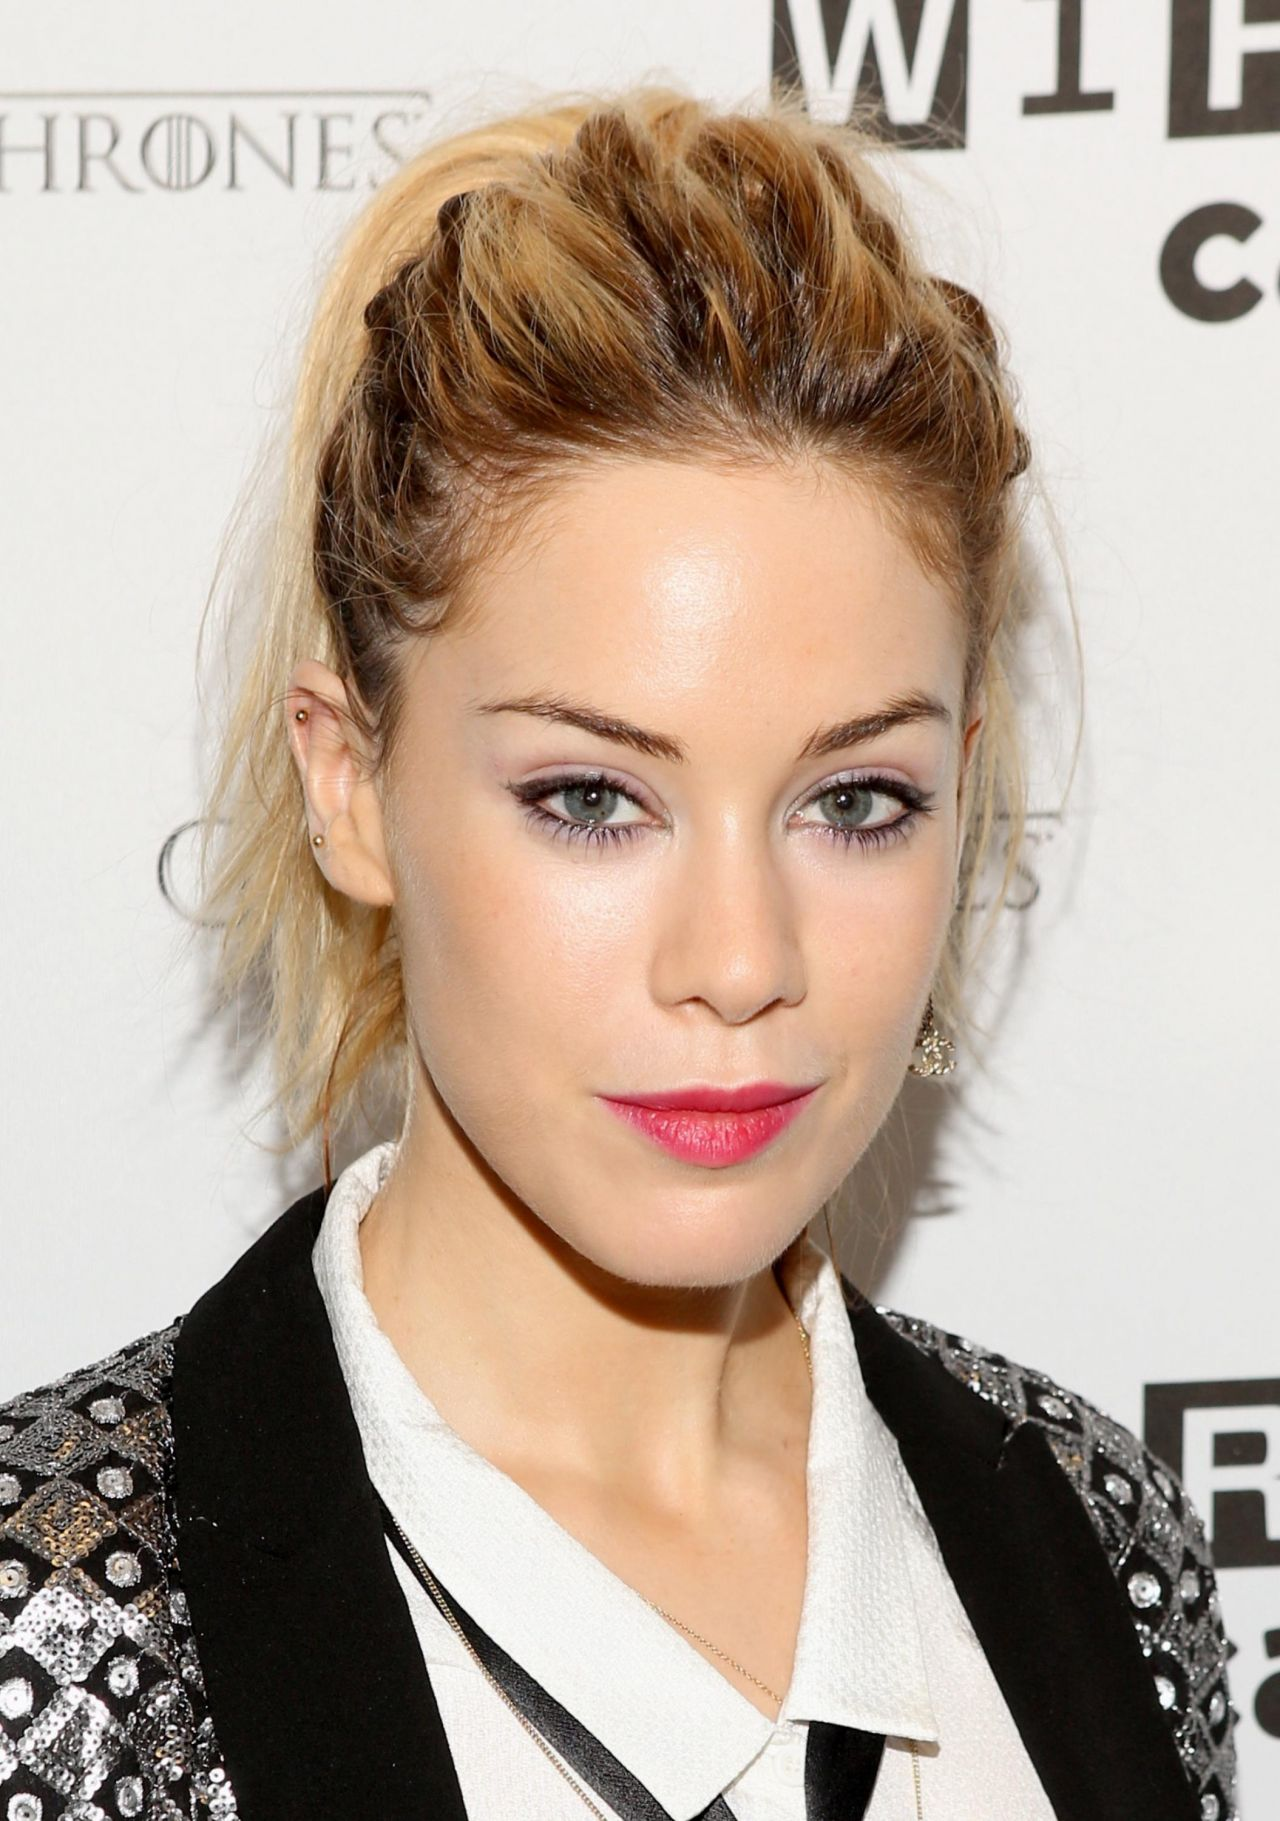 Roxanne Mckee Day 3 Of The Wired Cafe Sdcc 2014